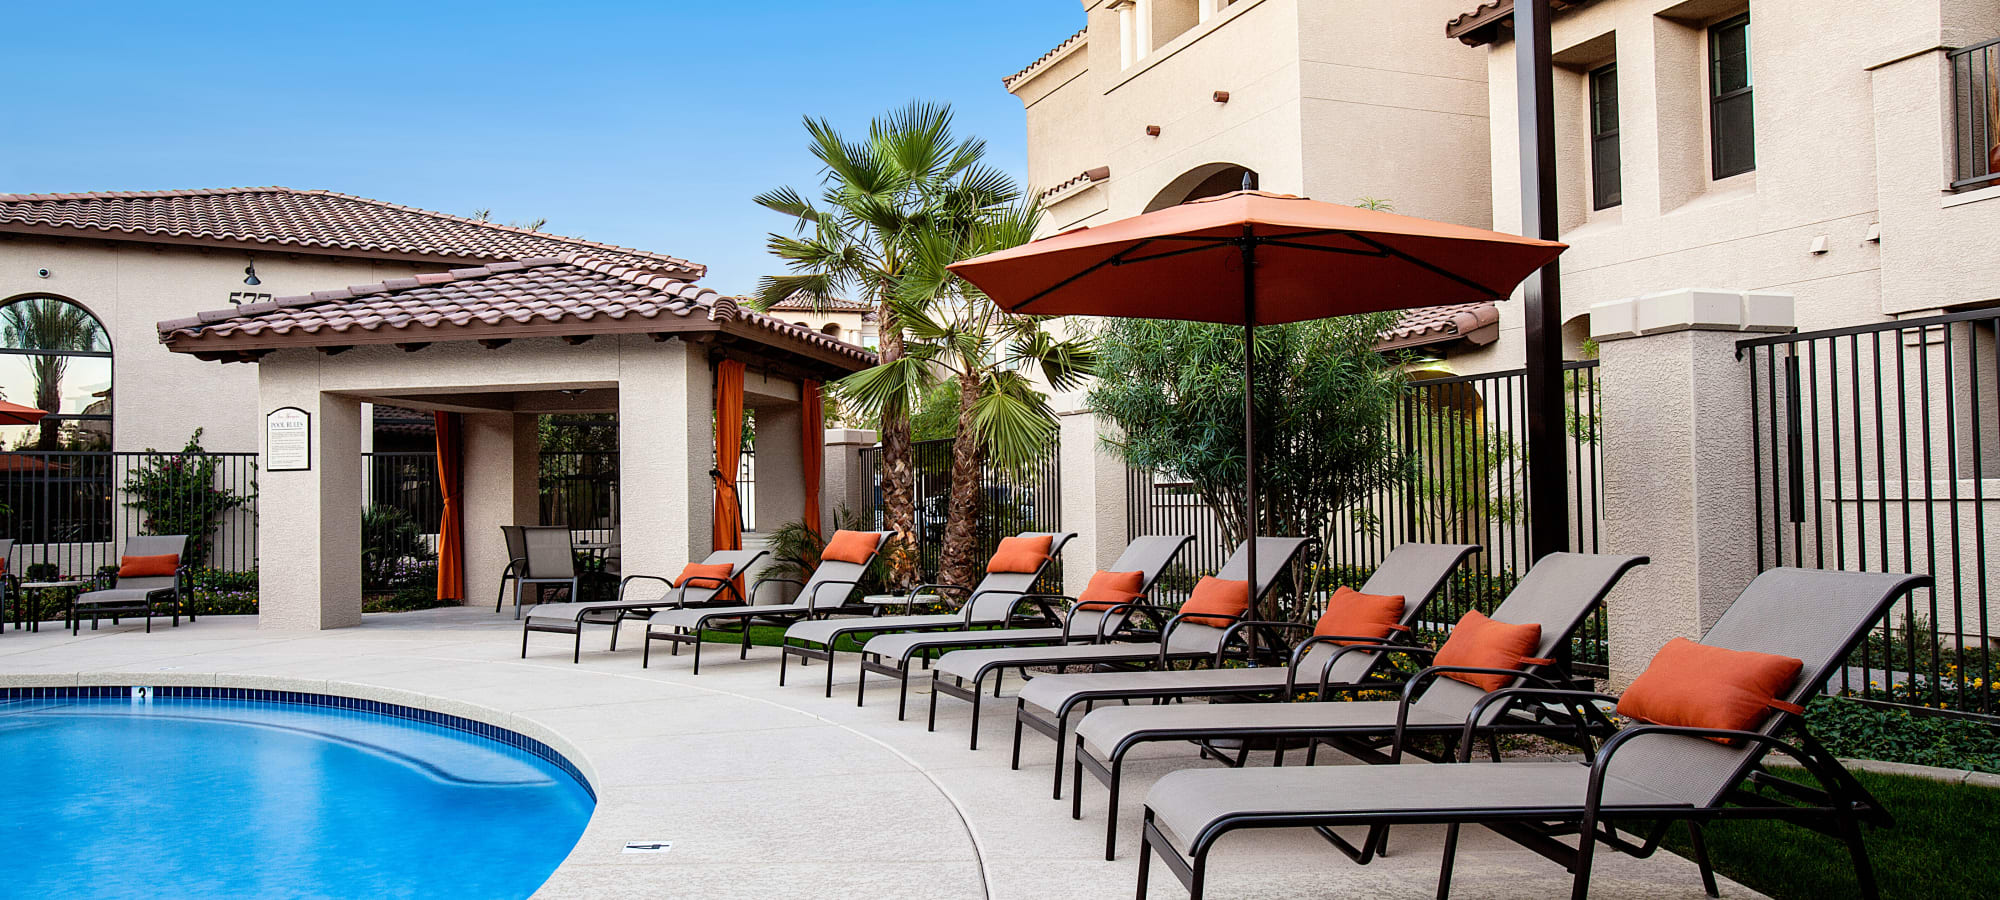 Chaise lounge chairs and umbrellas around the pool at San Marquis in Tempe, Arizona